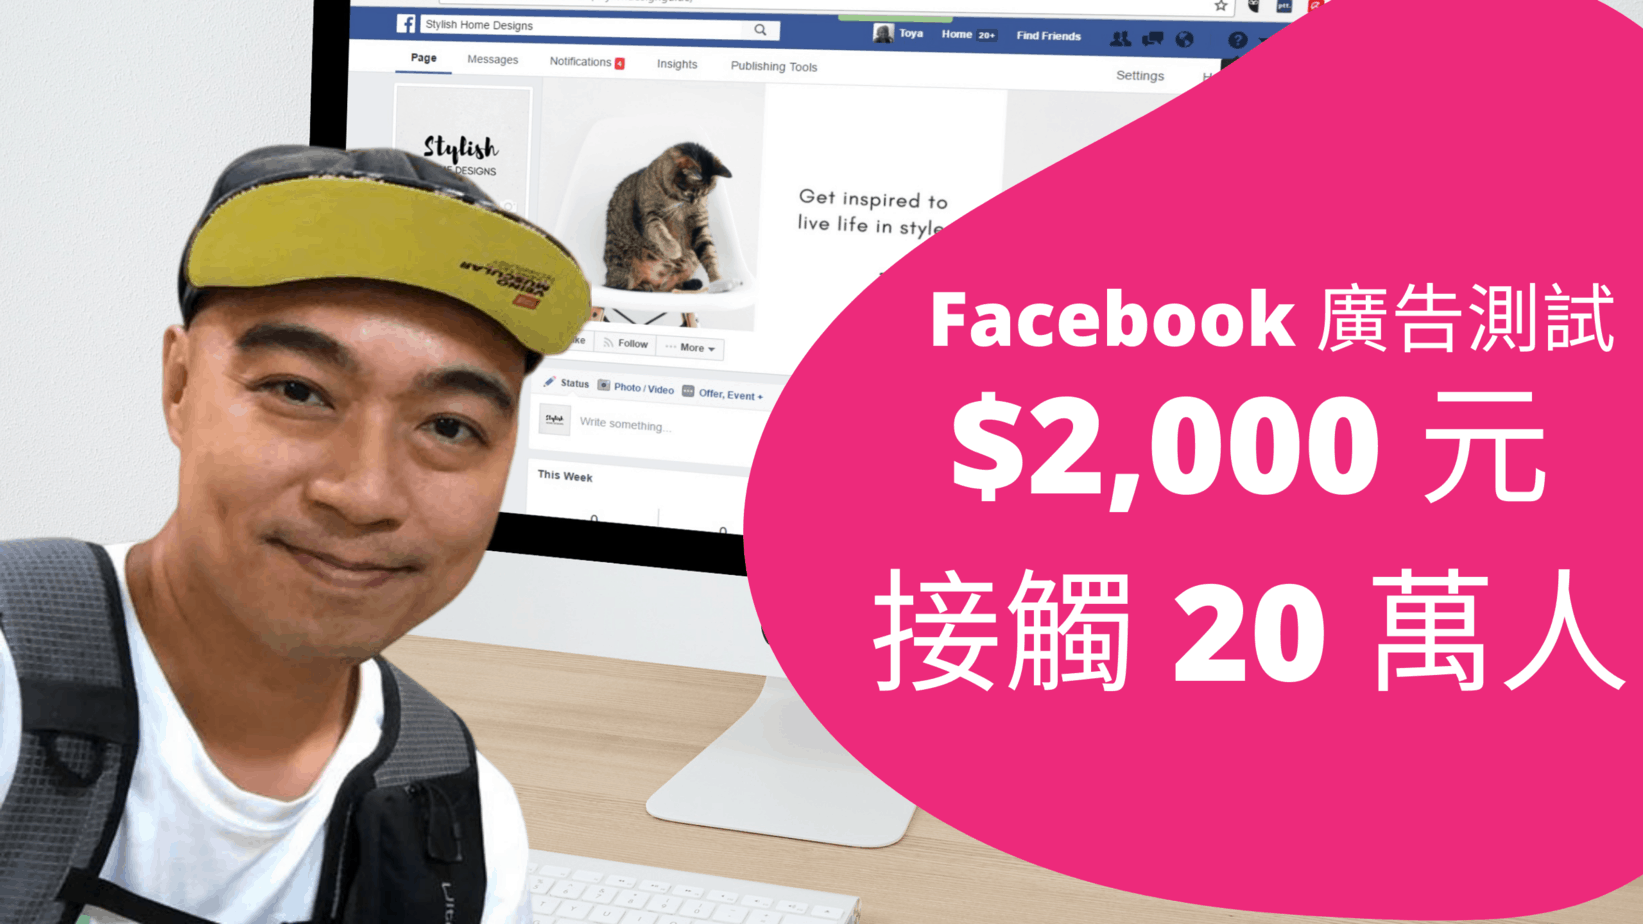 Facebook 廣告測試:,000 多元可以接觸到 20 萬人 (Reach and frequency模式)